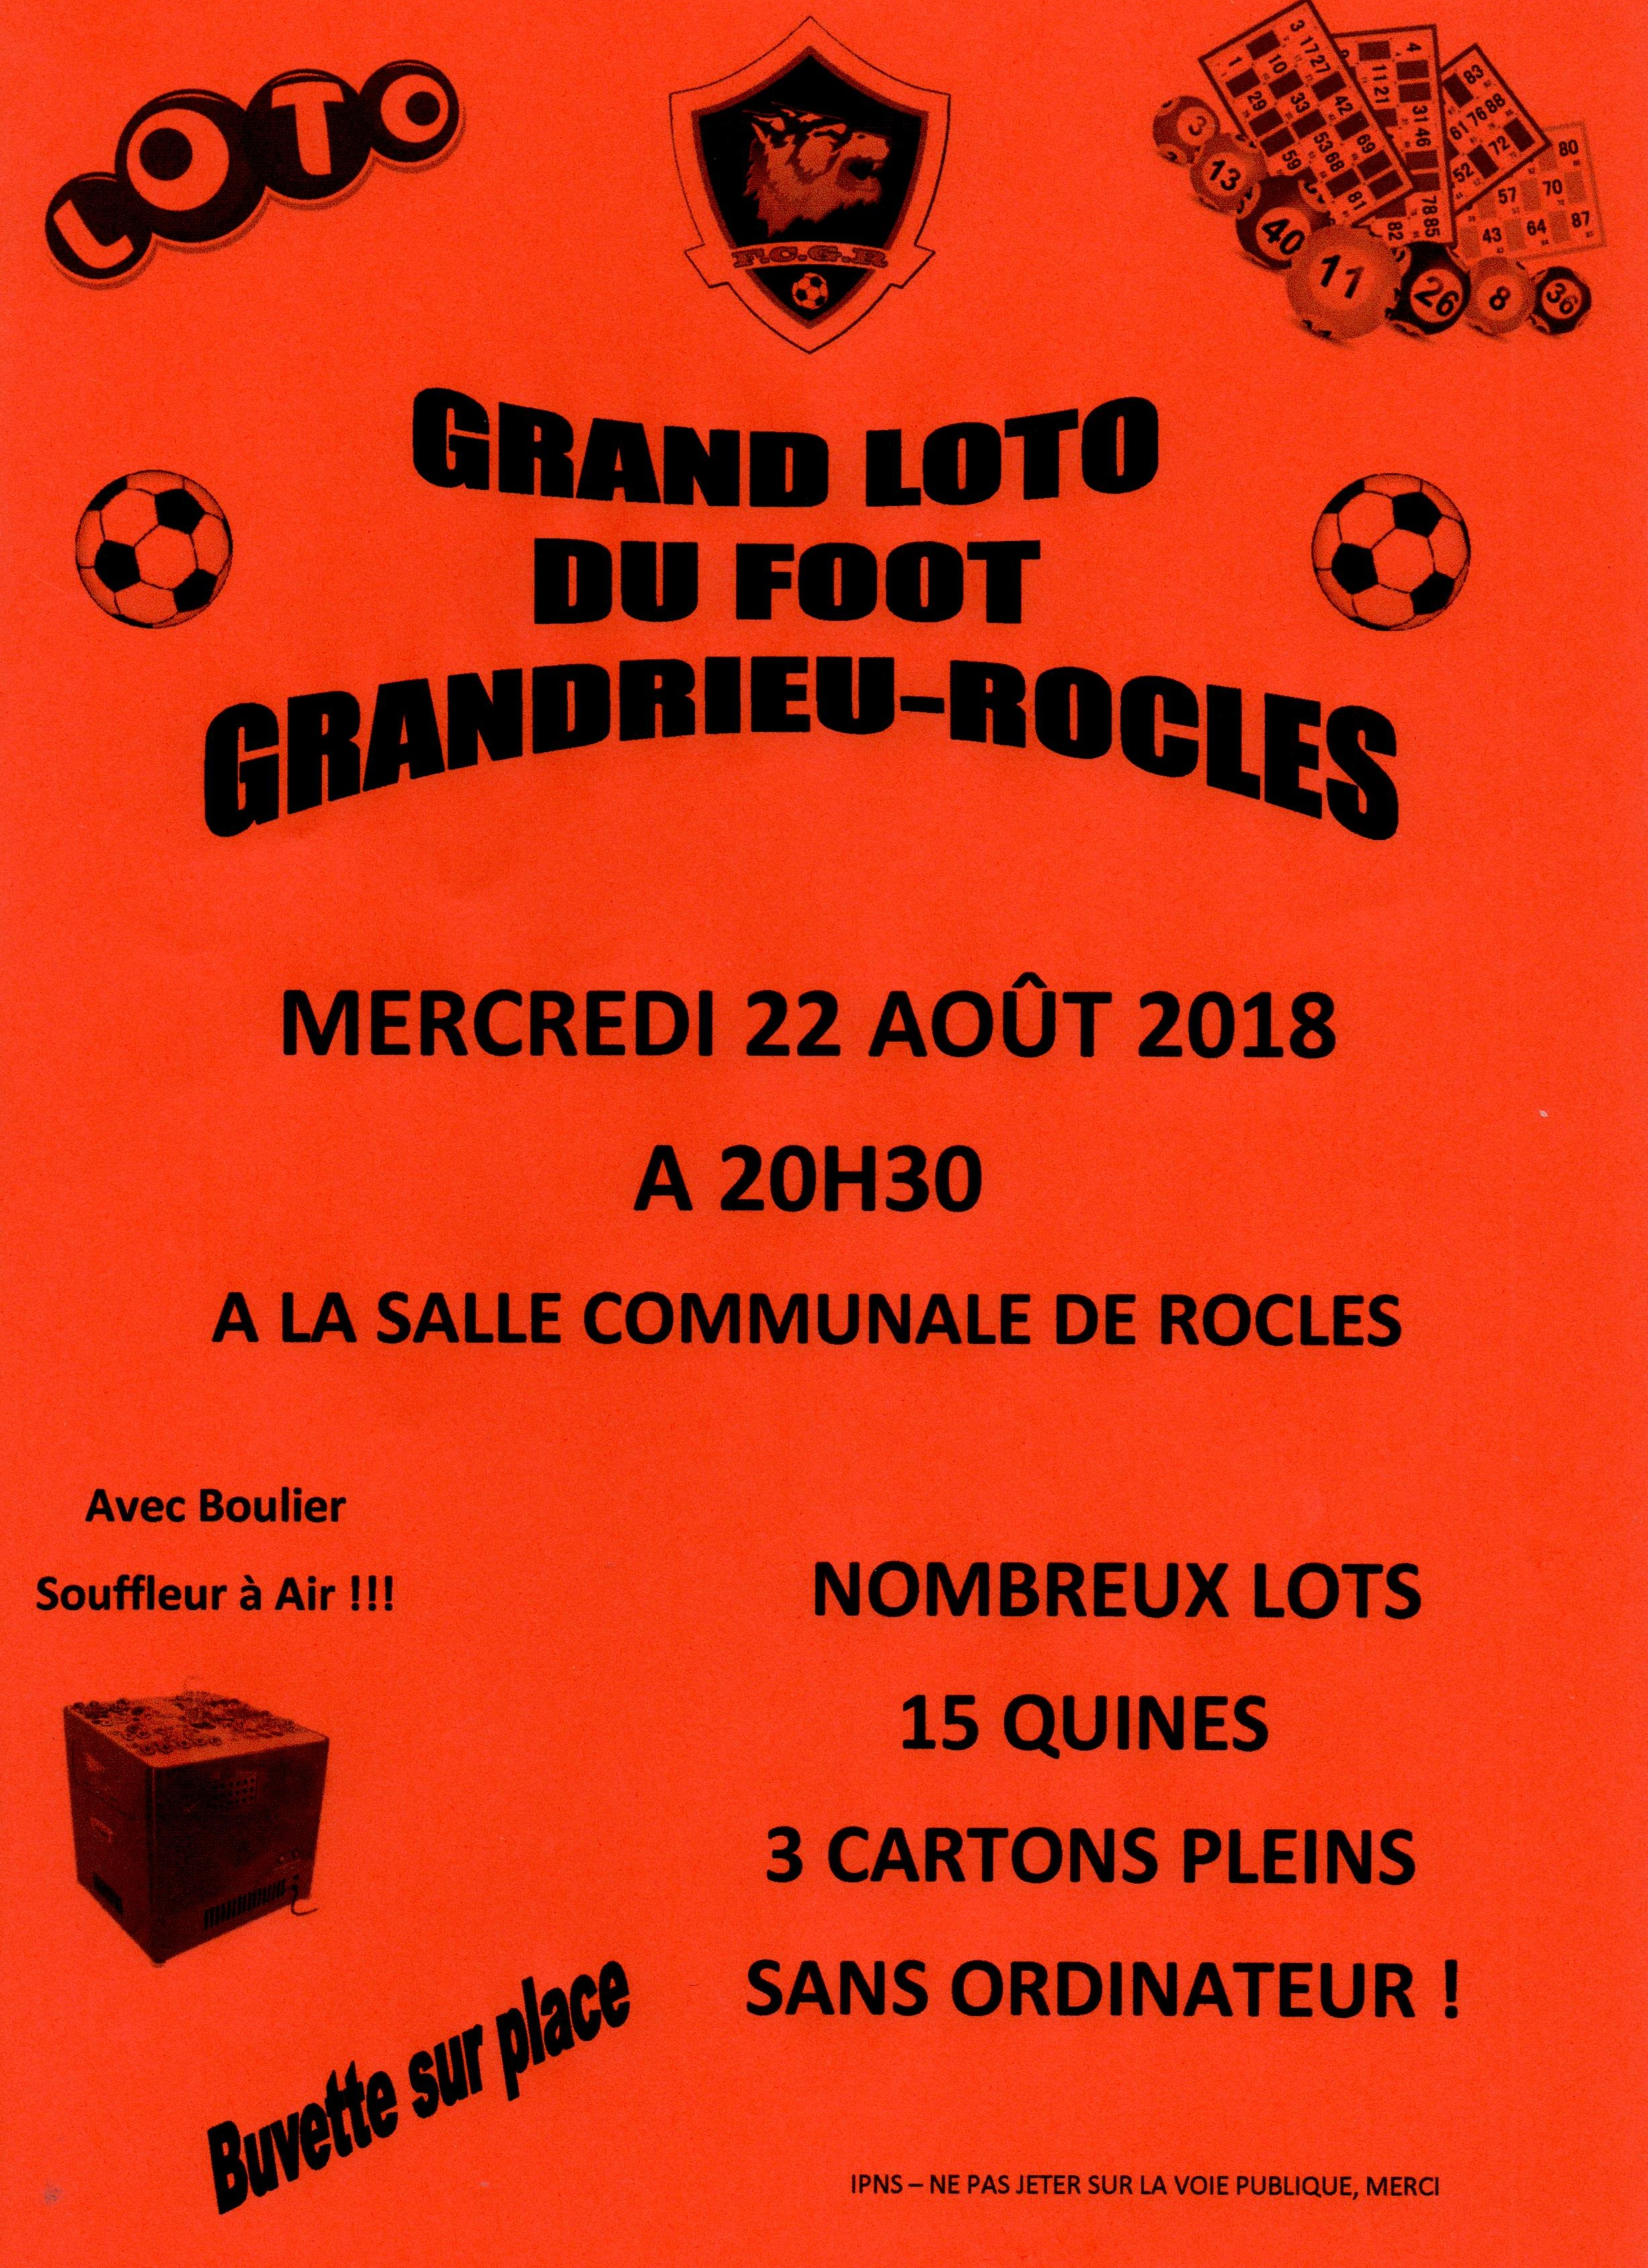 LOTO DU FOOT GRANDRIEU ROCLES